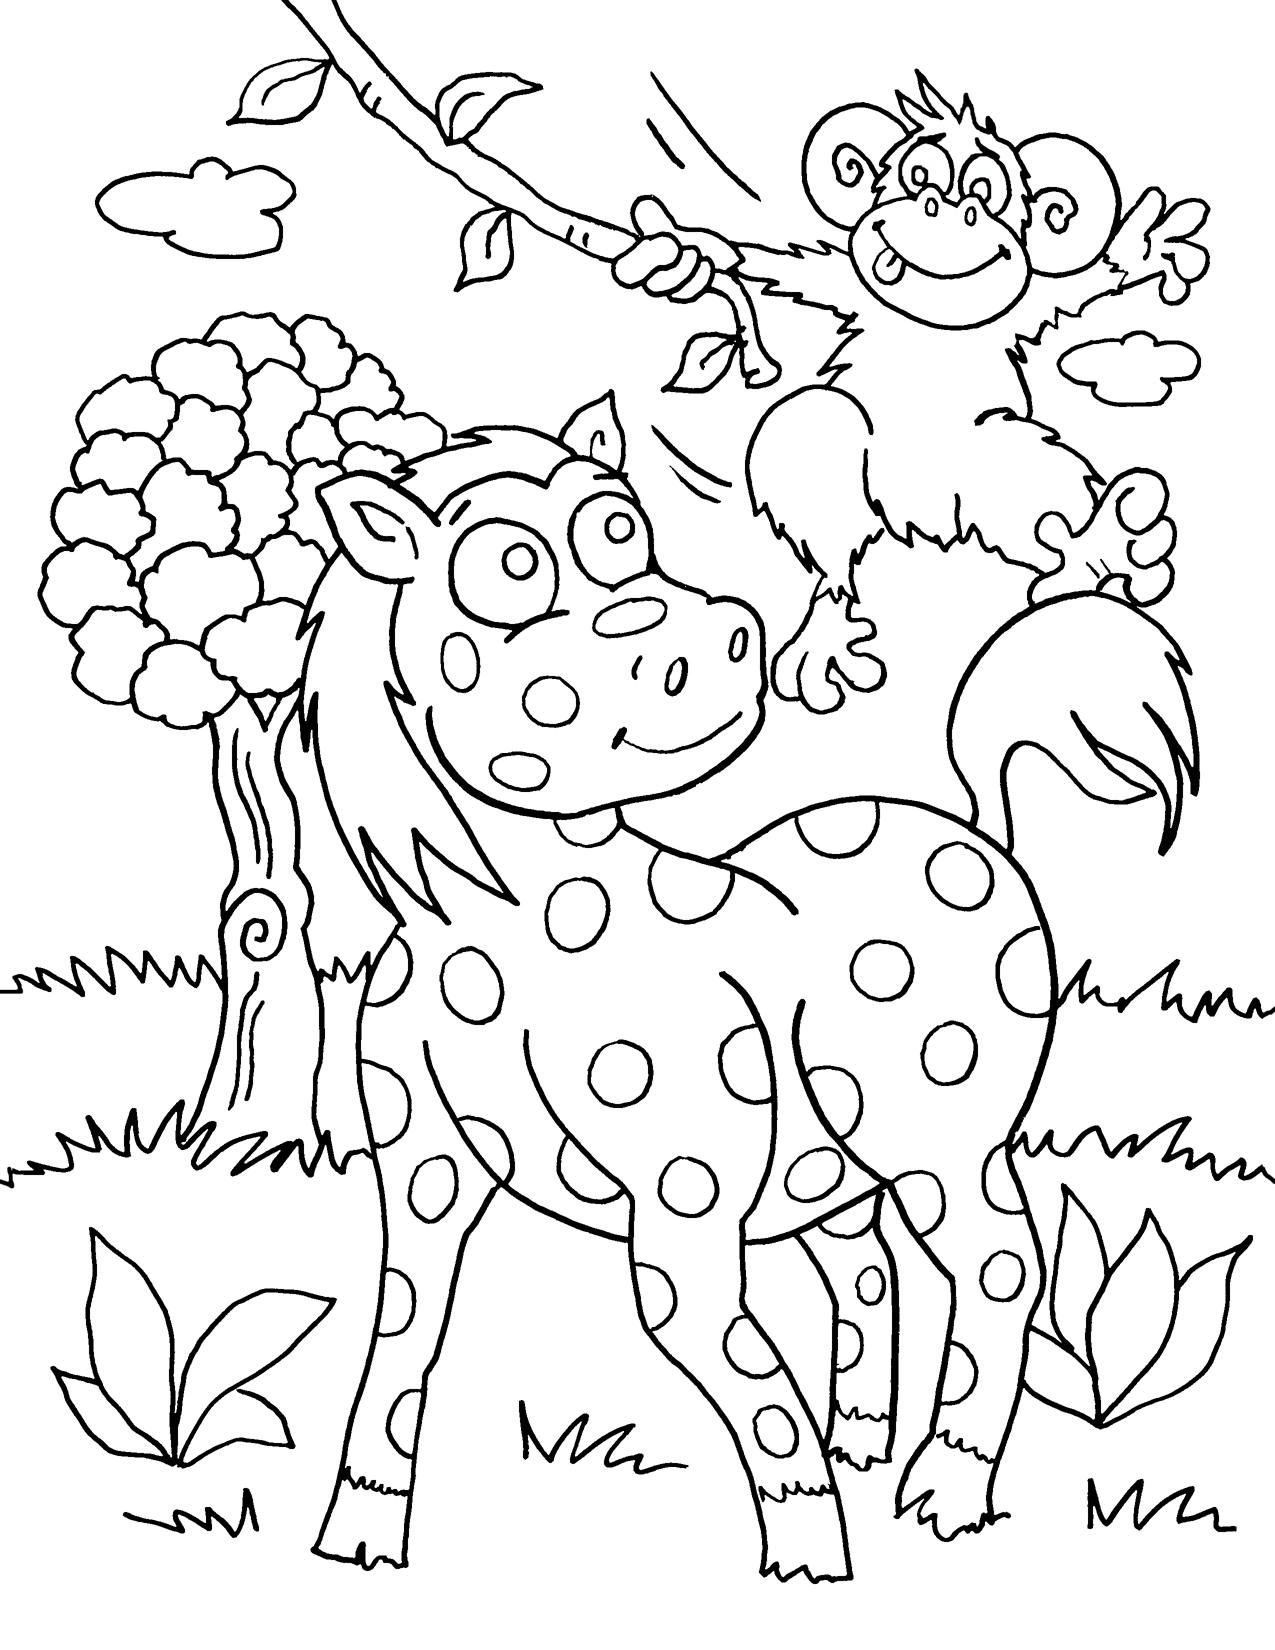 safari animal coloring pages cartoon safari animals coloring page stock illustration coloring animal safari pages